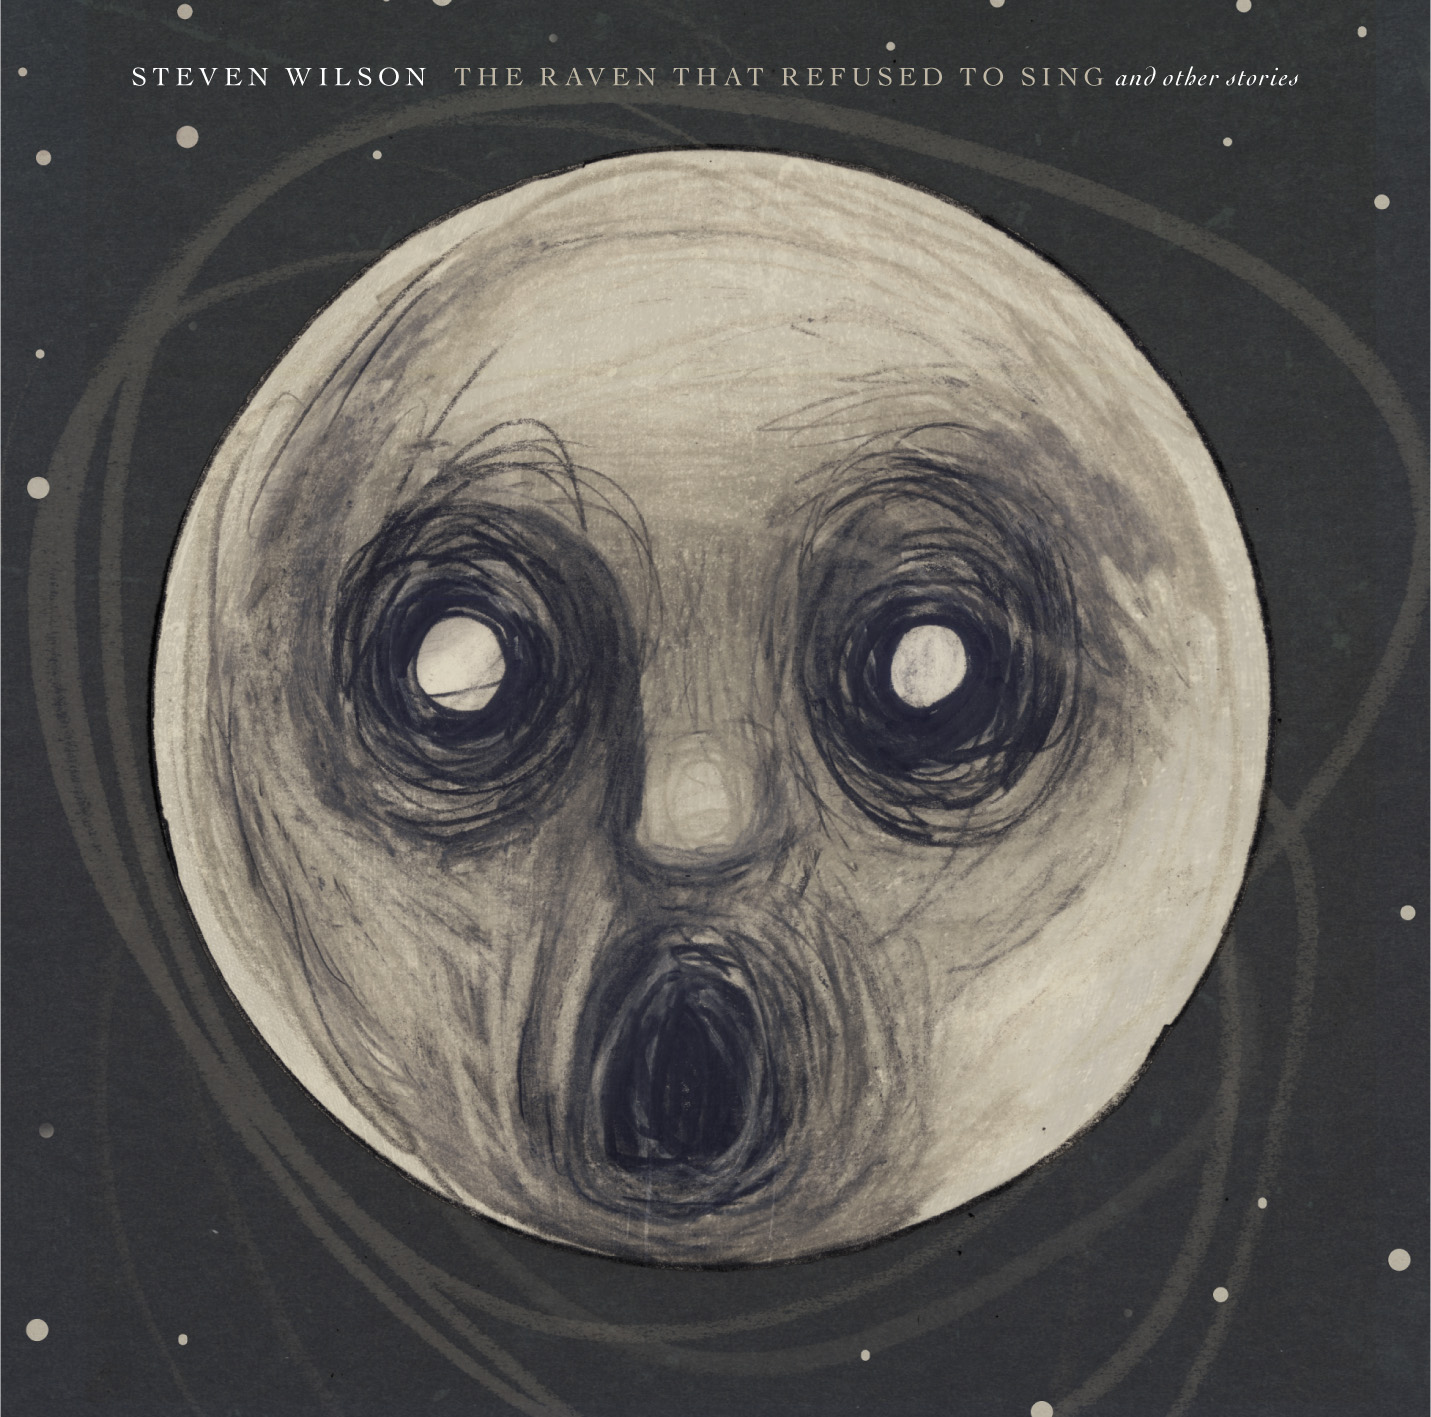 Steven Wilson – The Raven that Refused to Sing (and Other Stories) Review